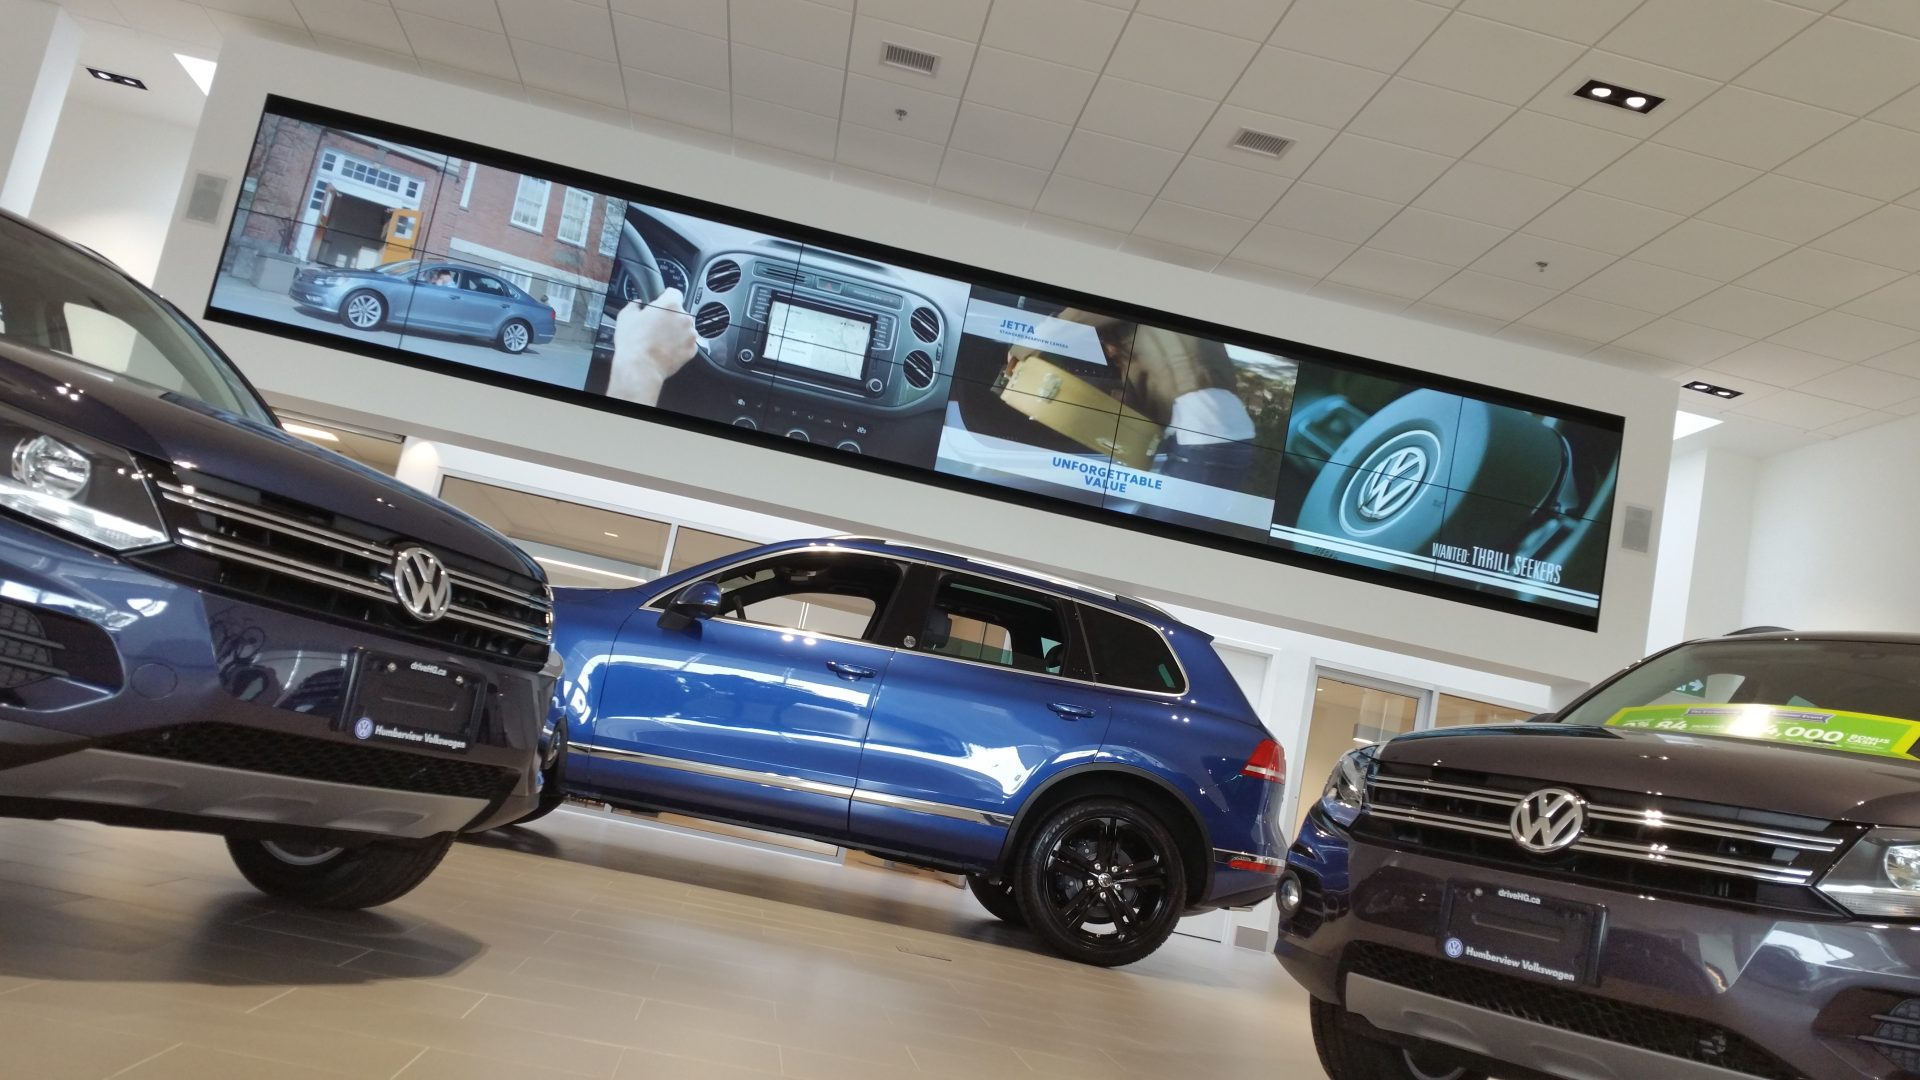 Toronto Volkswagen Dealership Utilises Digital Signage To